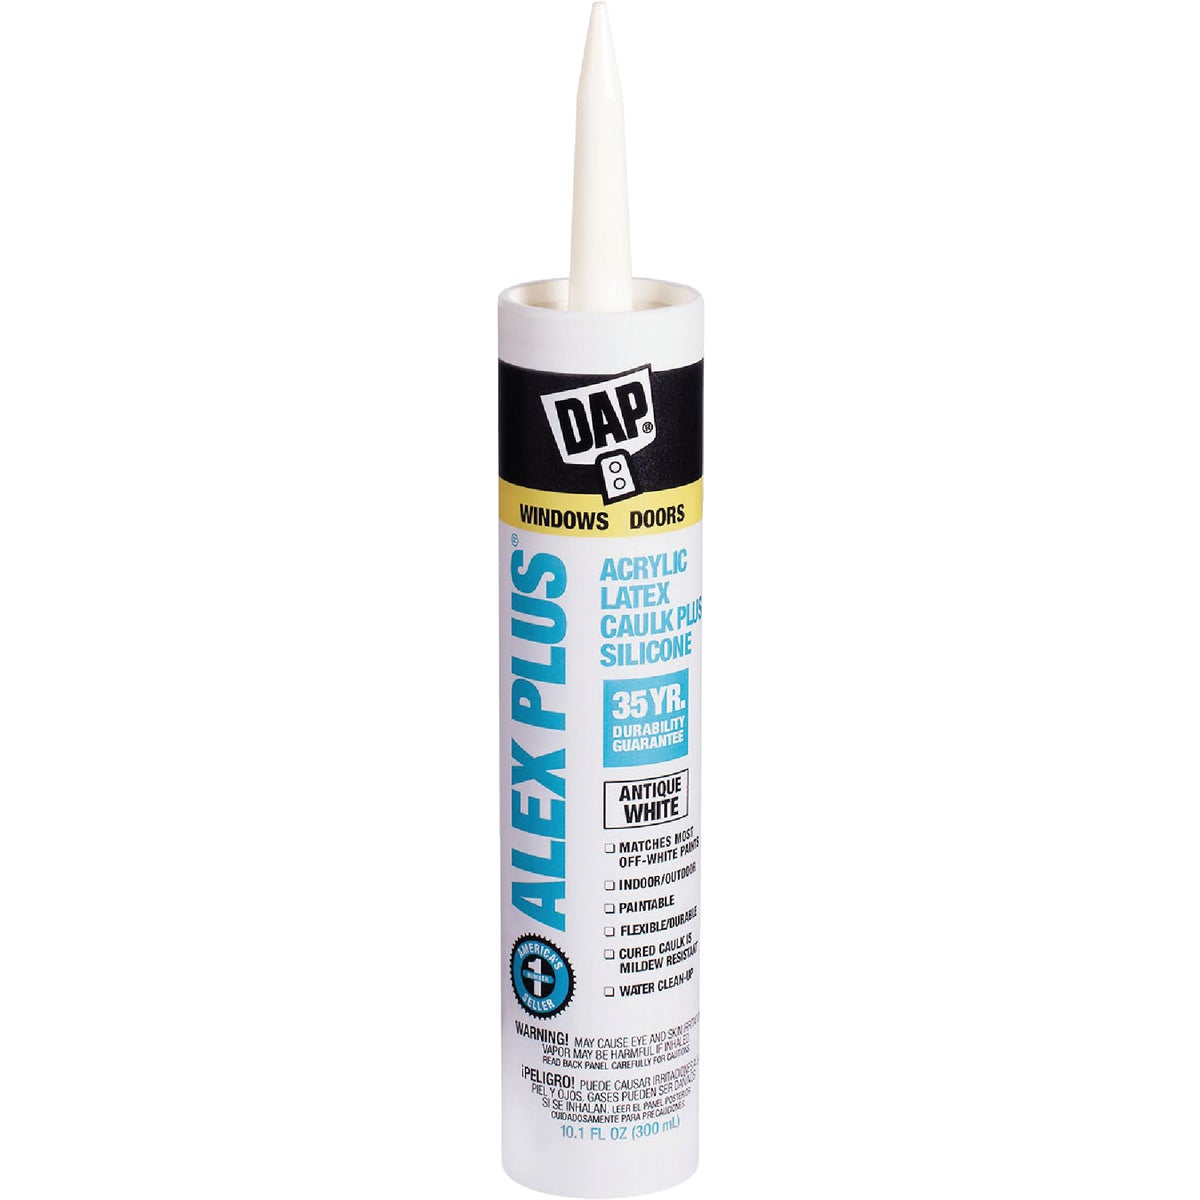 ANTQ WHT ALEX PLUS CAULK - 18172 by Dap Inc